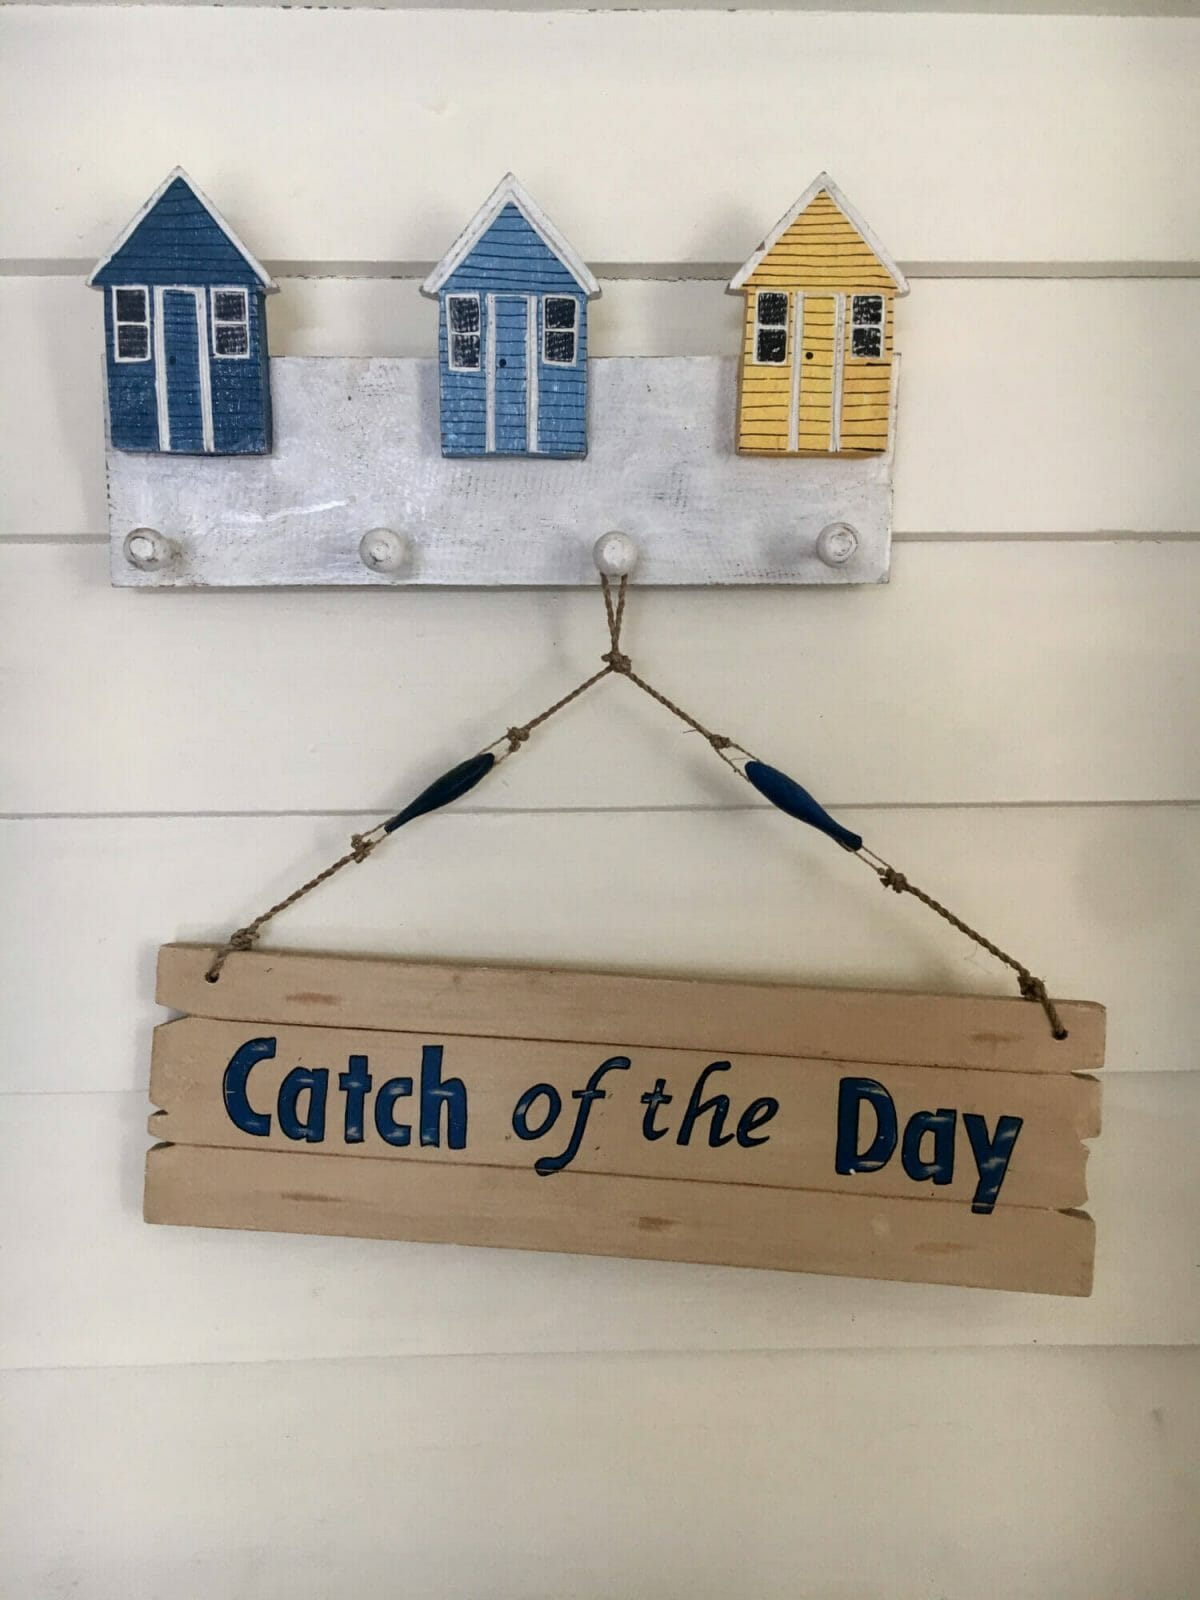 Weekender - Accommodation in Bremer Bay - 21 Barbara Street. Beach decor throughout the house